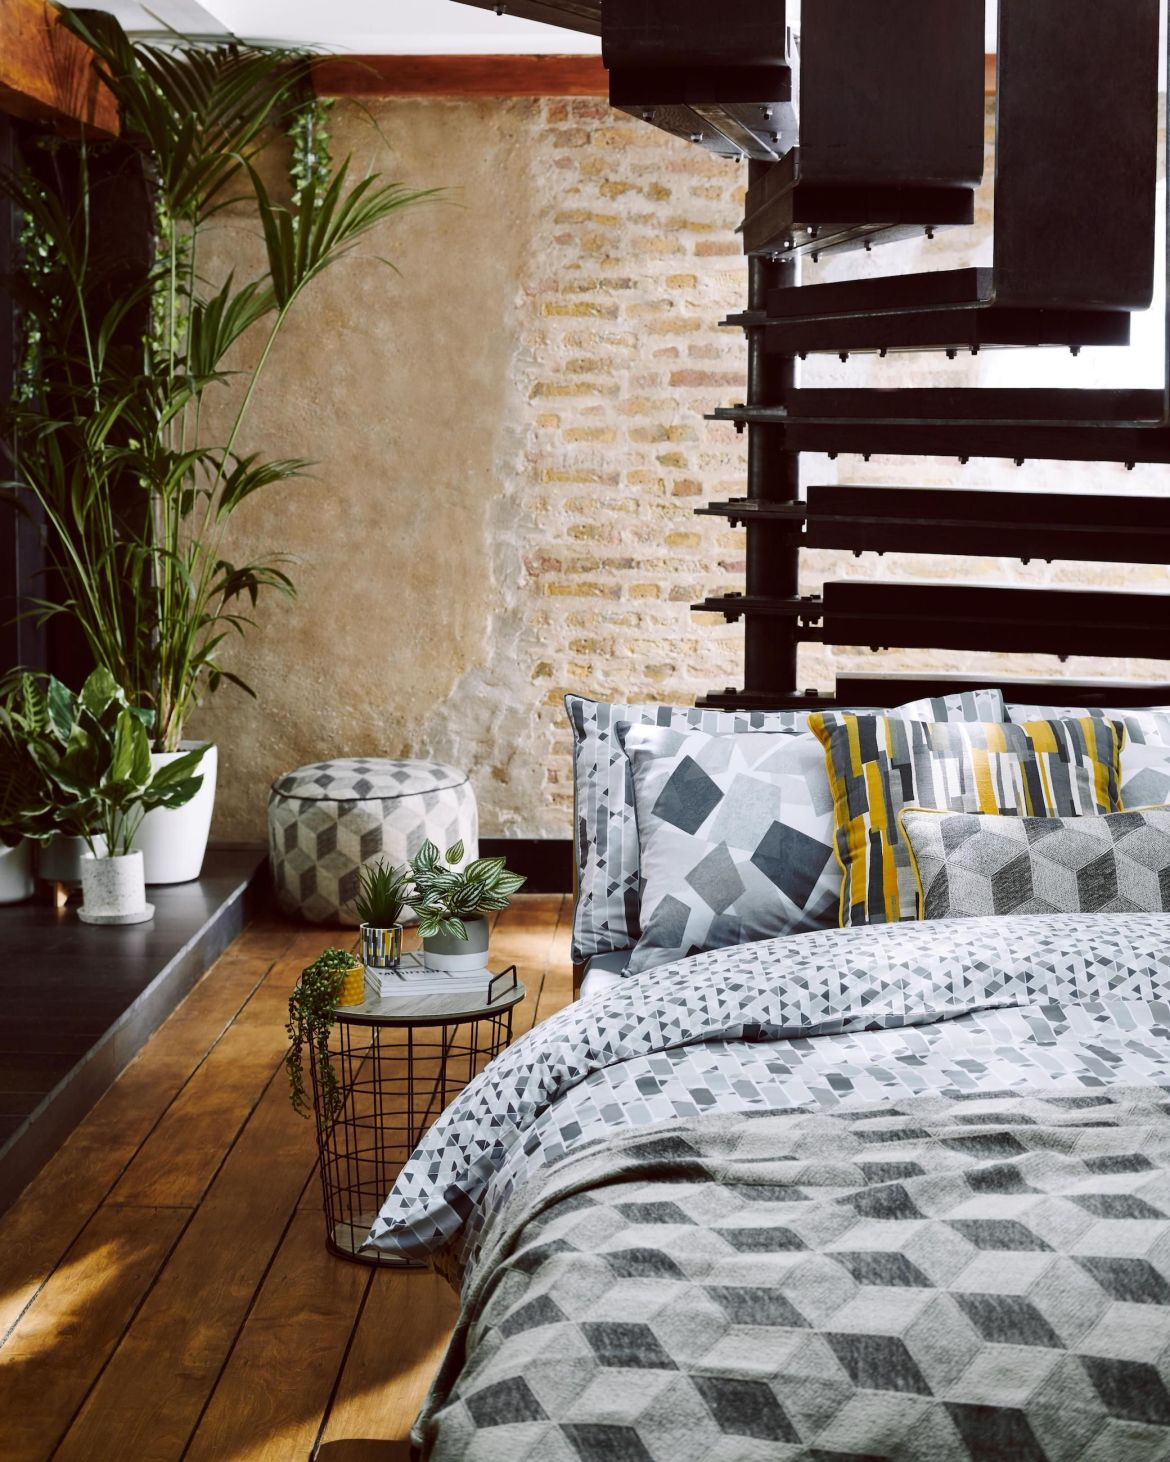 sainsbury's home, loft living collection